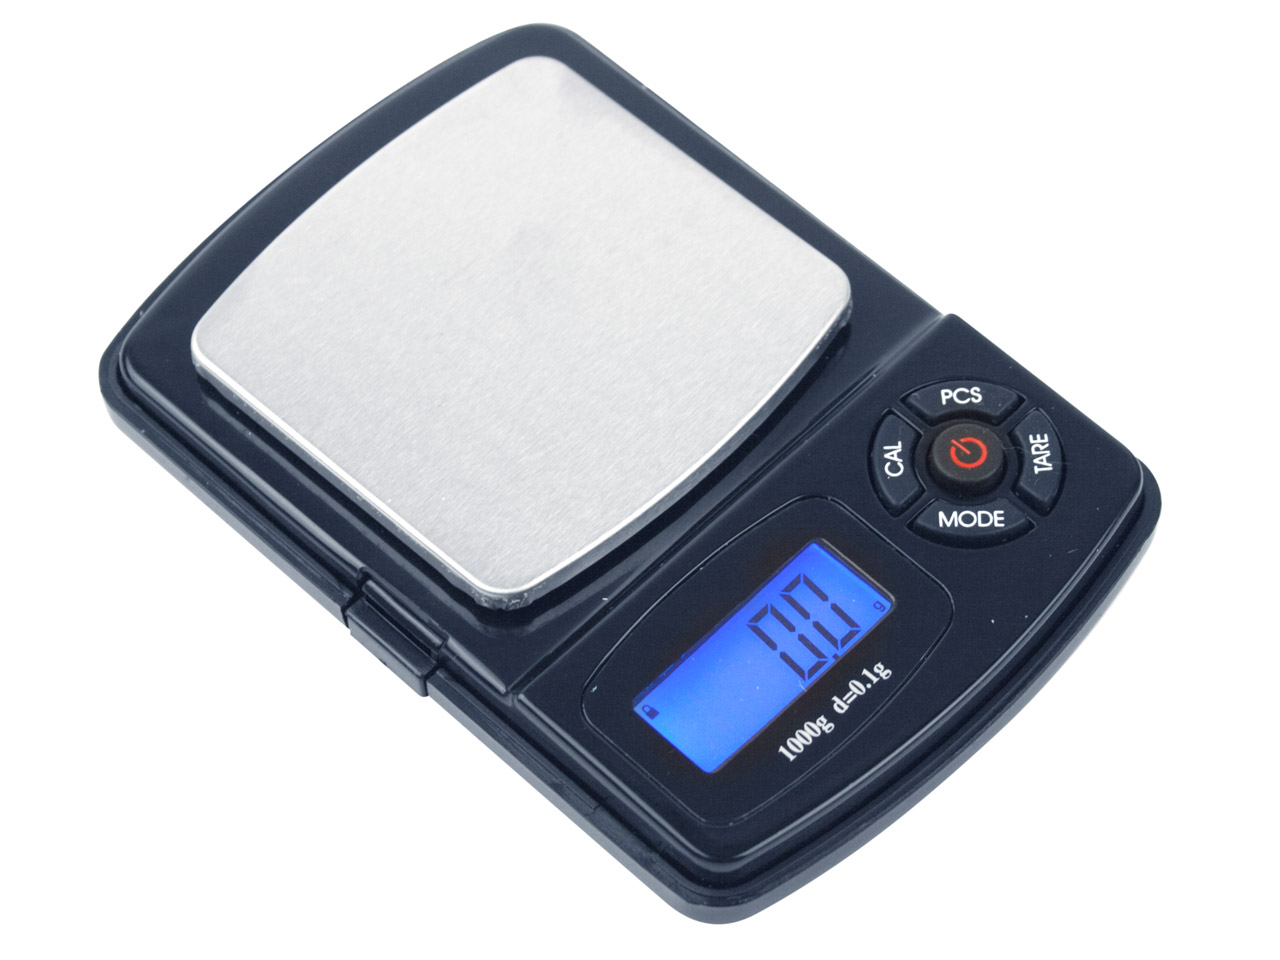 475e5e13c0d On Balance Dk-1000 Kilo Mini Digital Pocket Scale - cooksongold.com